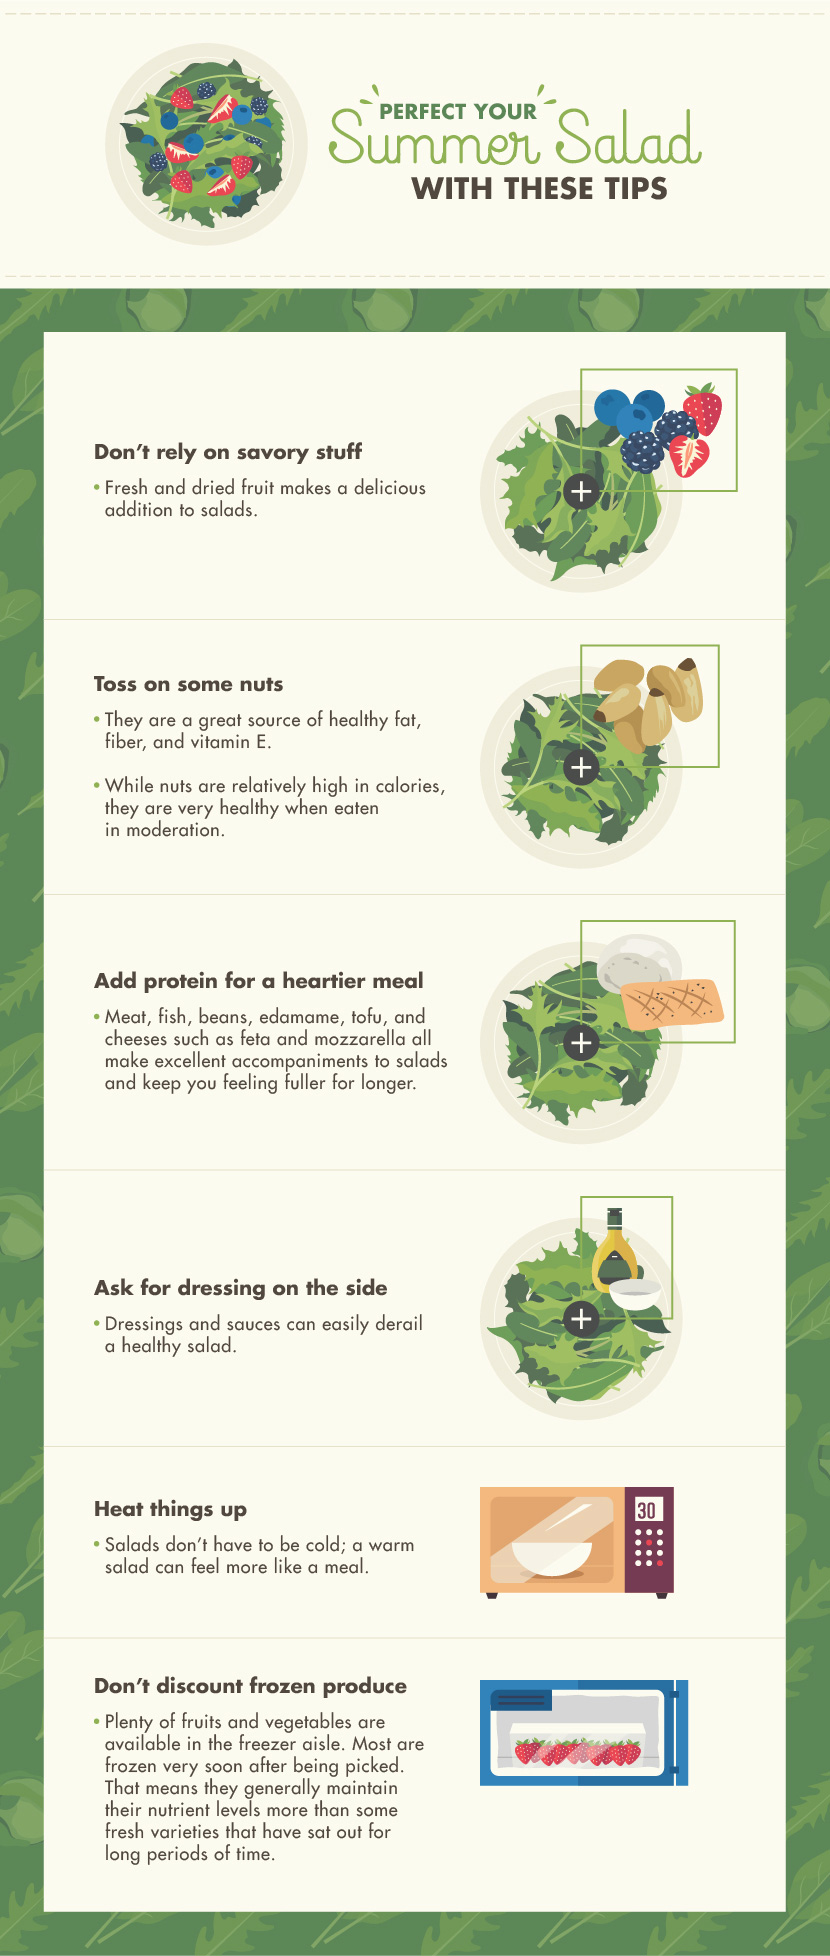 Summer Salad Tips